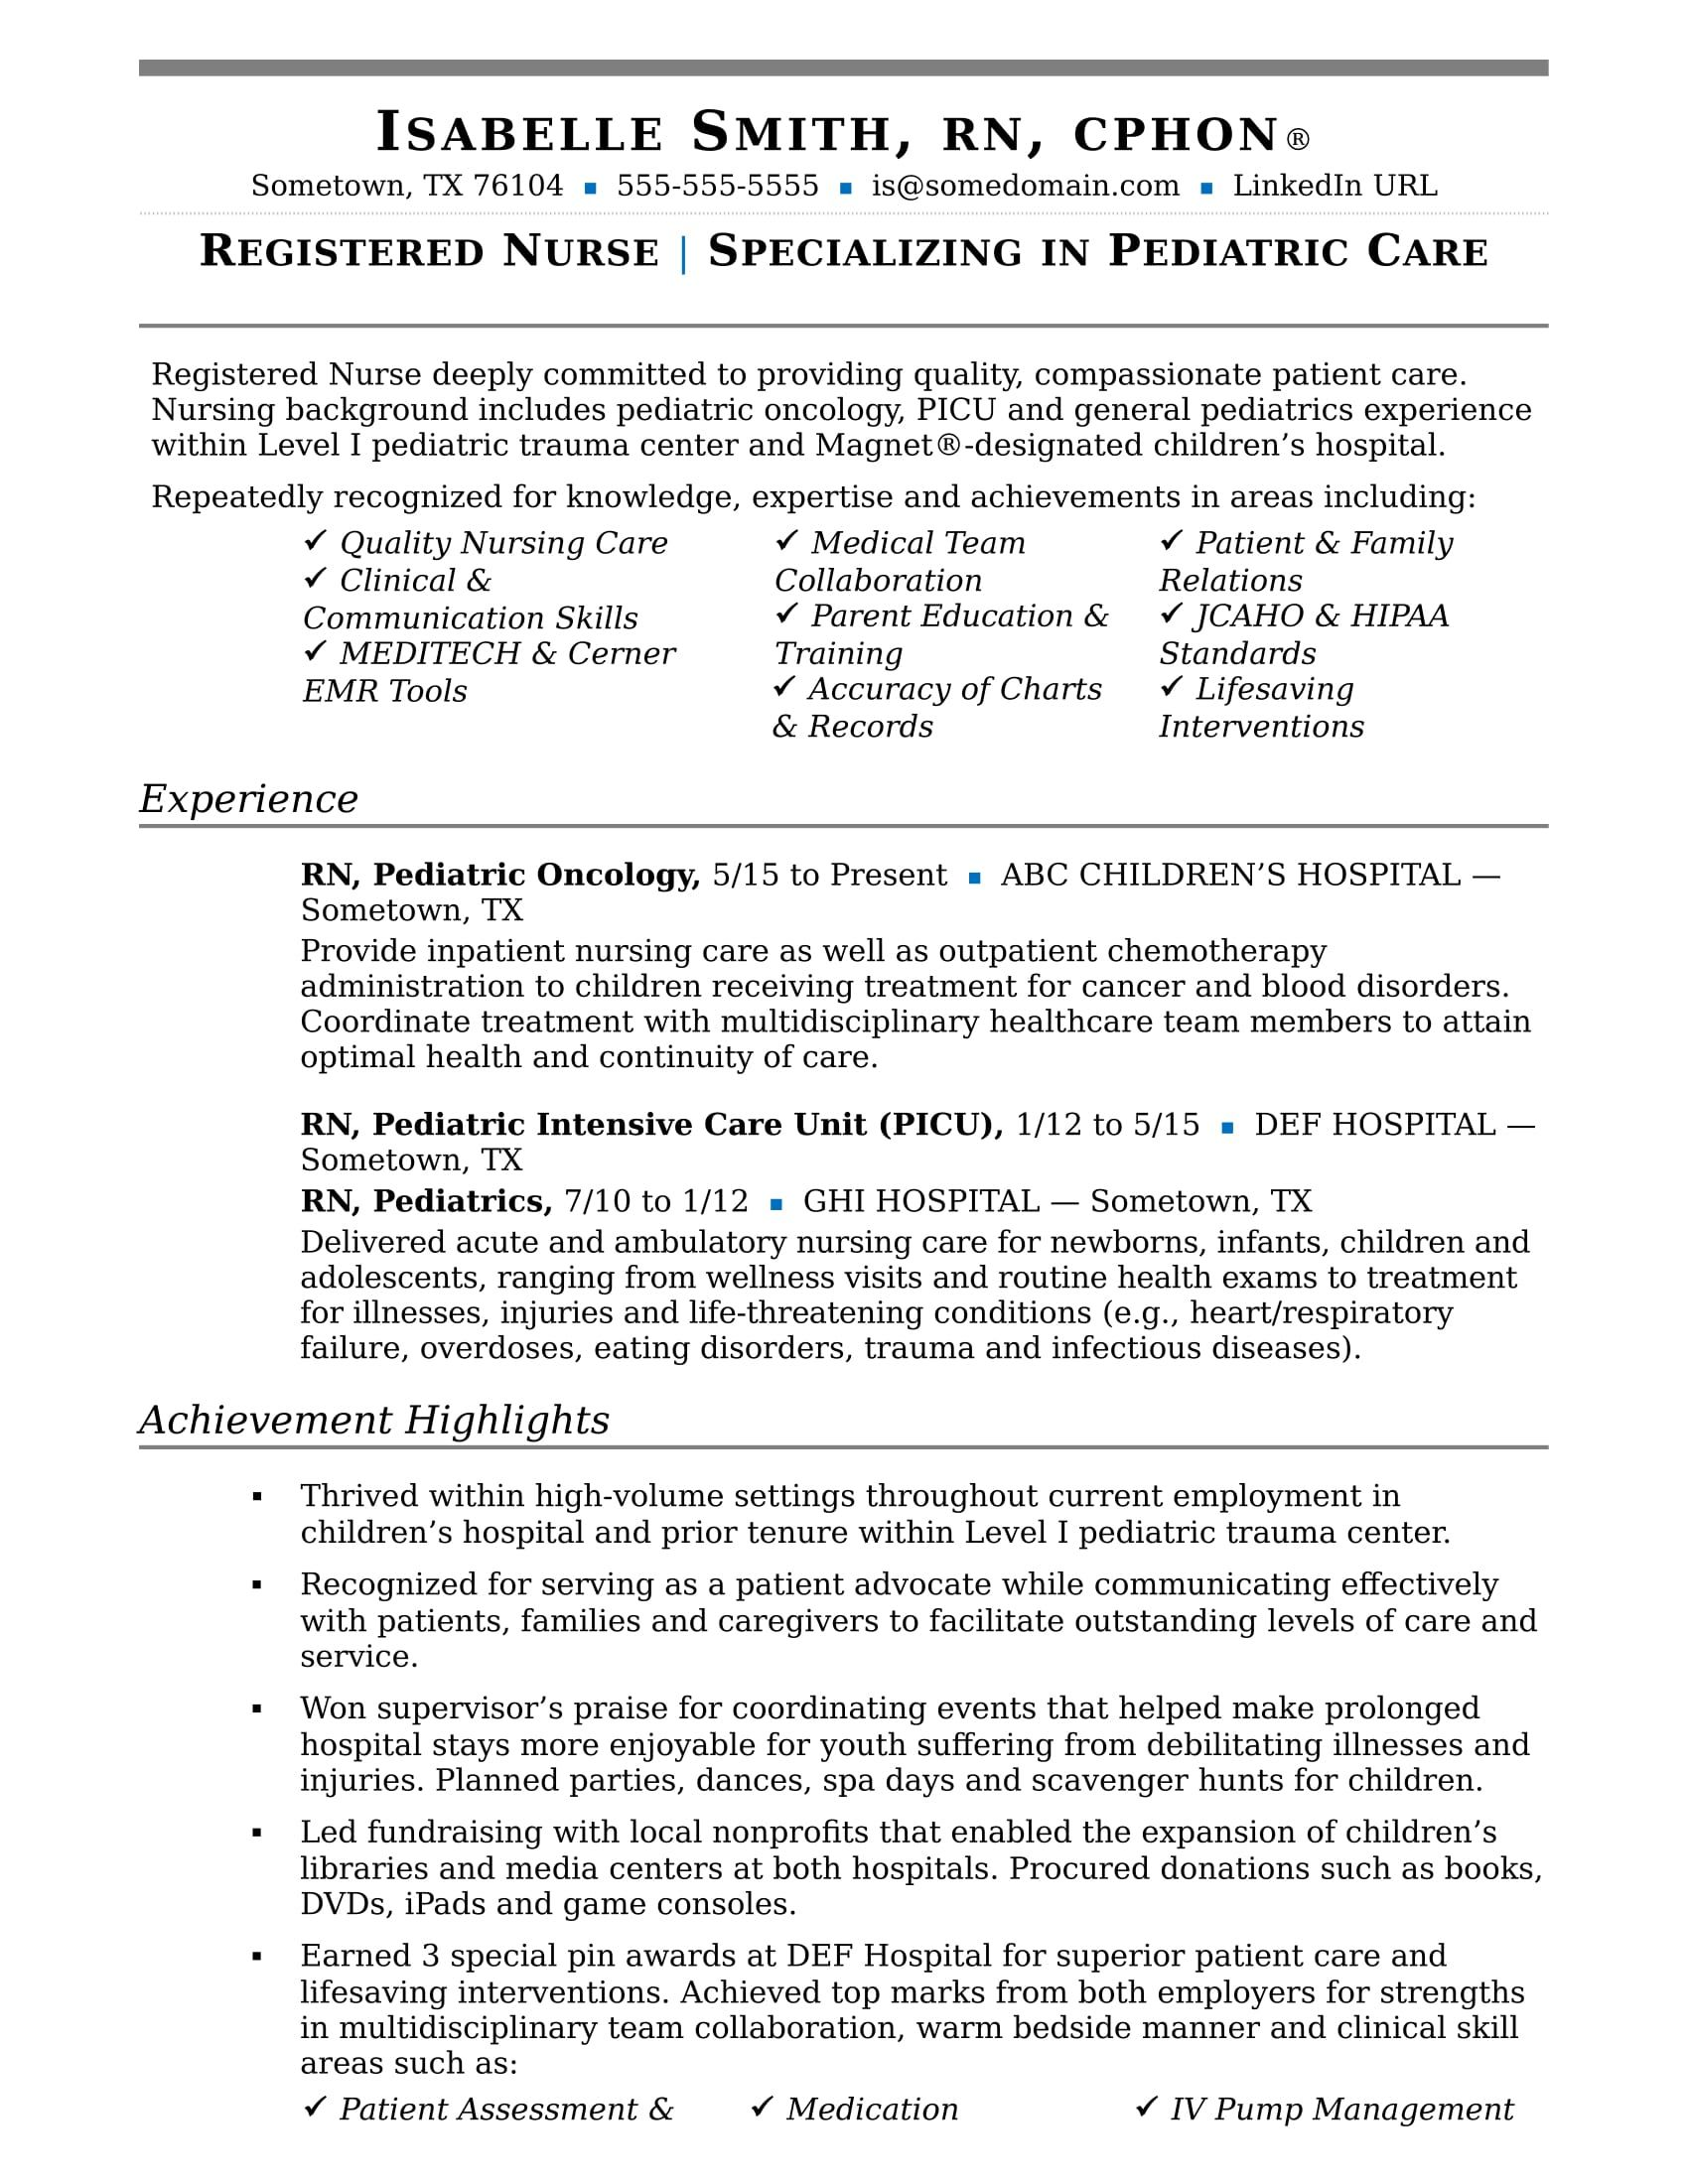 Check Out This Sample Resume For A Certified Nursing Assistant